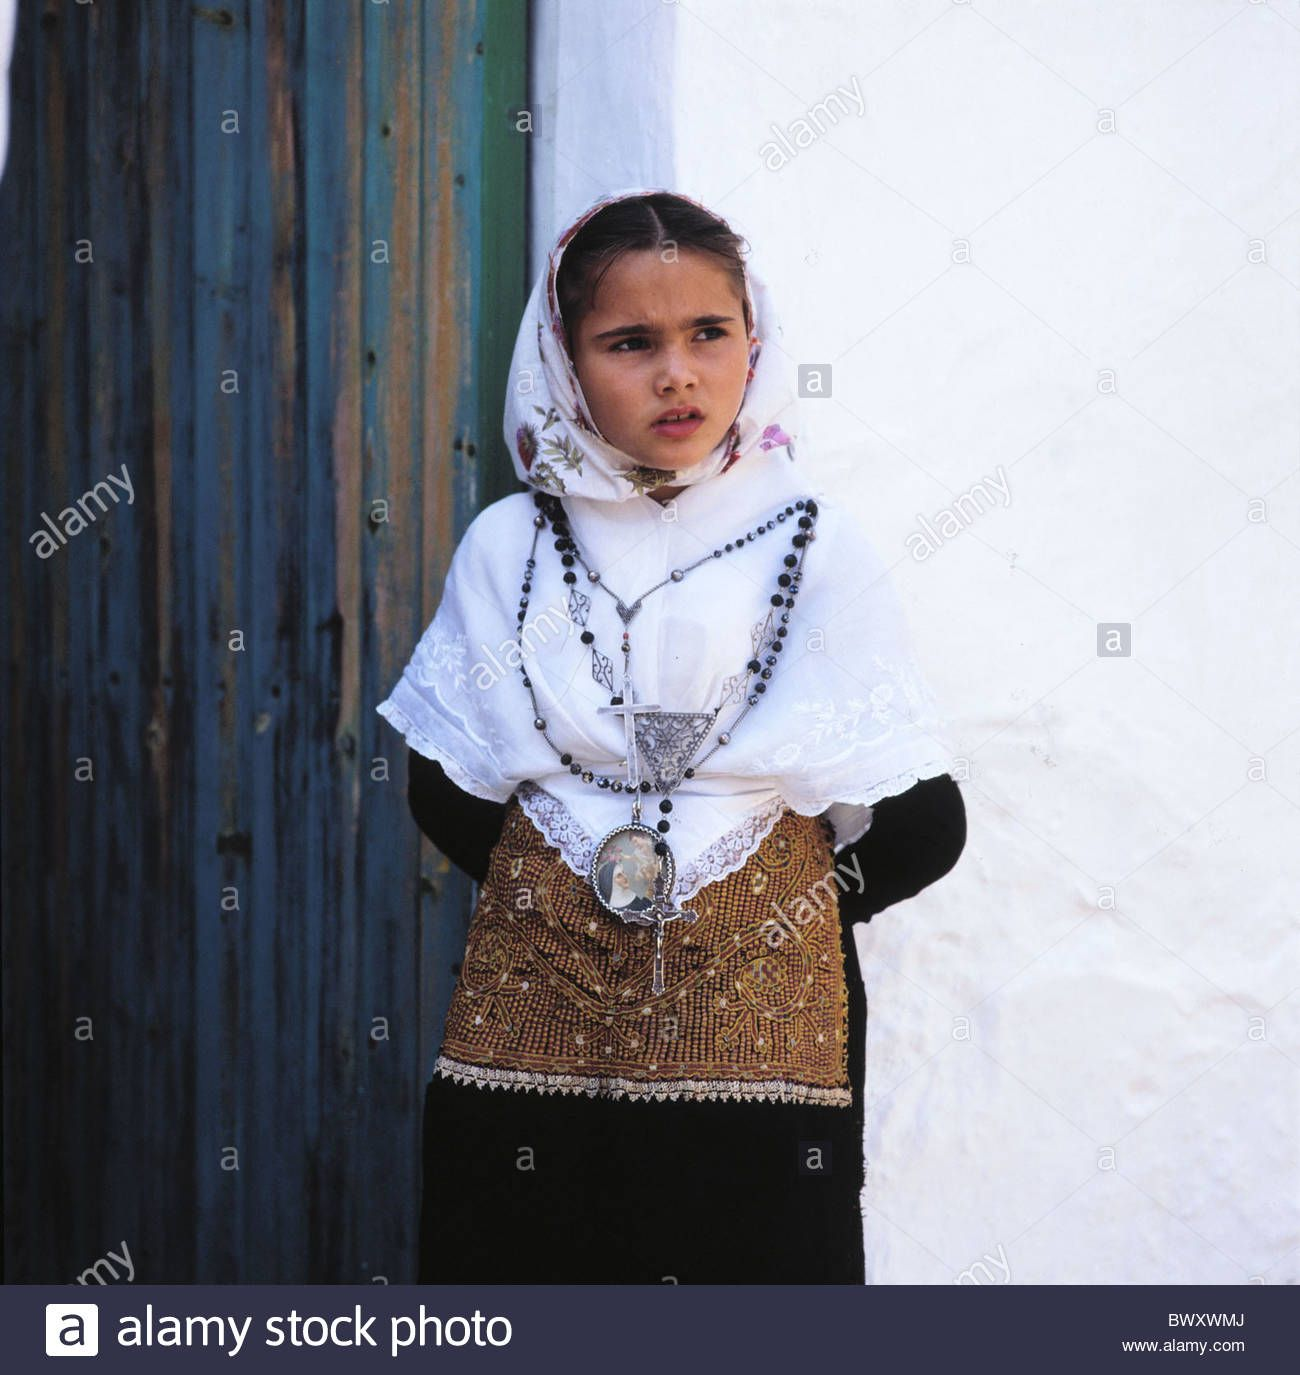 Download this stock image: Ibiza girl Spain Europe national costume portrait folklore tradition Balearic Islands child - BWXWMJ from Alamy's library of millions of high resolution stock photos, illustrations and vectors.